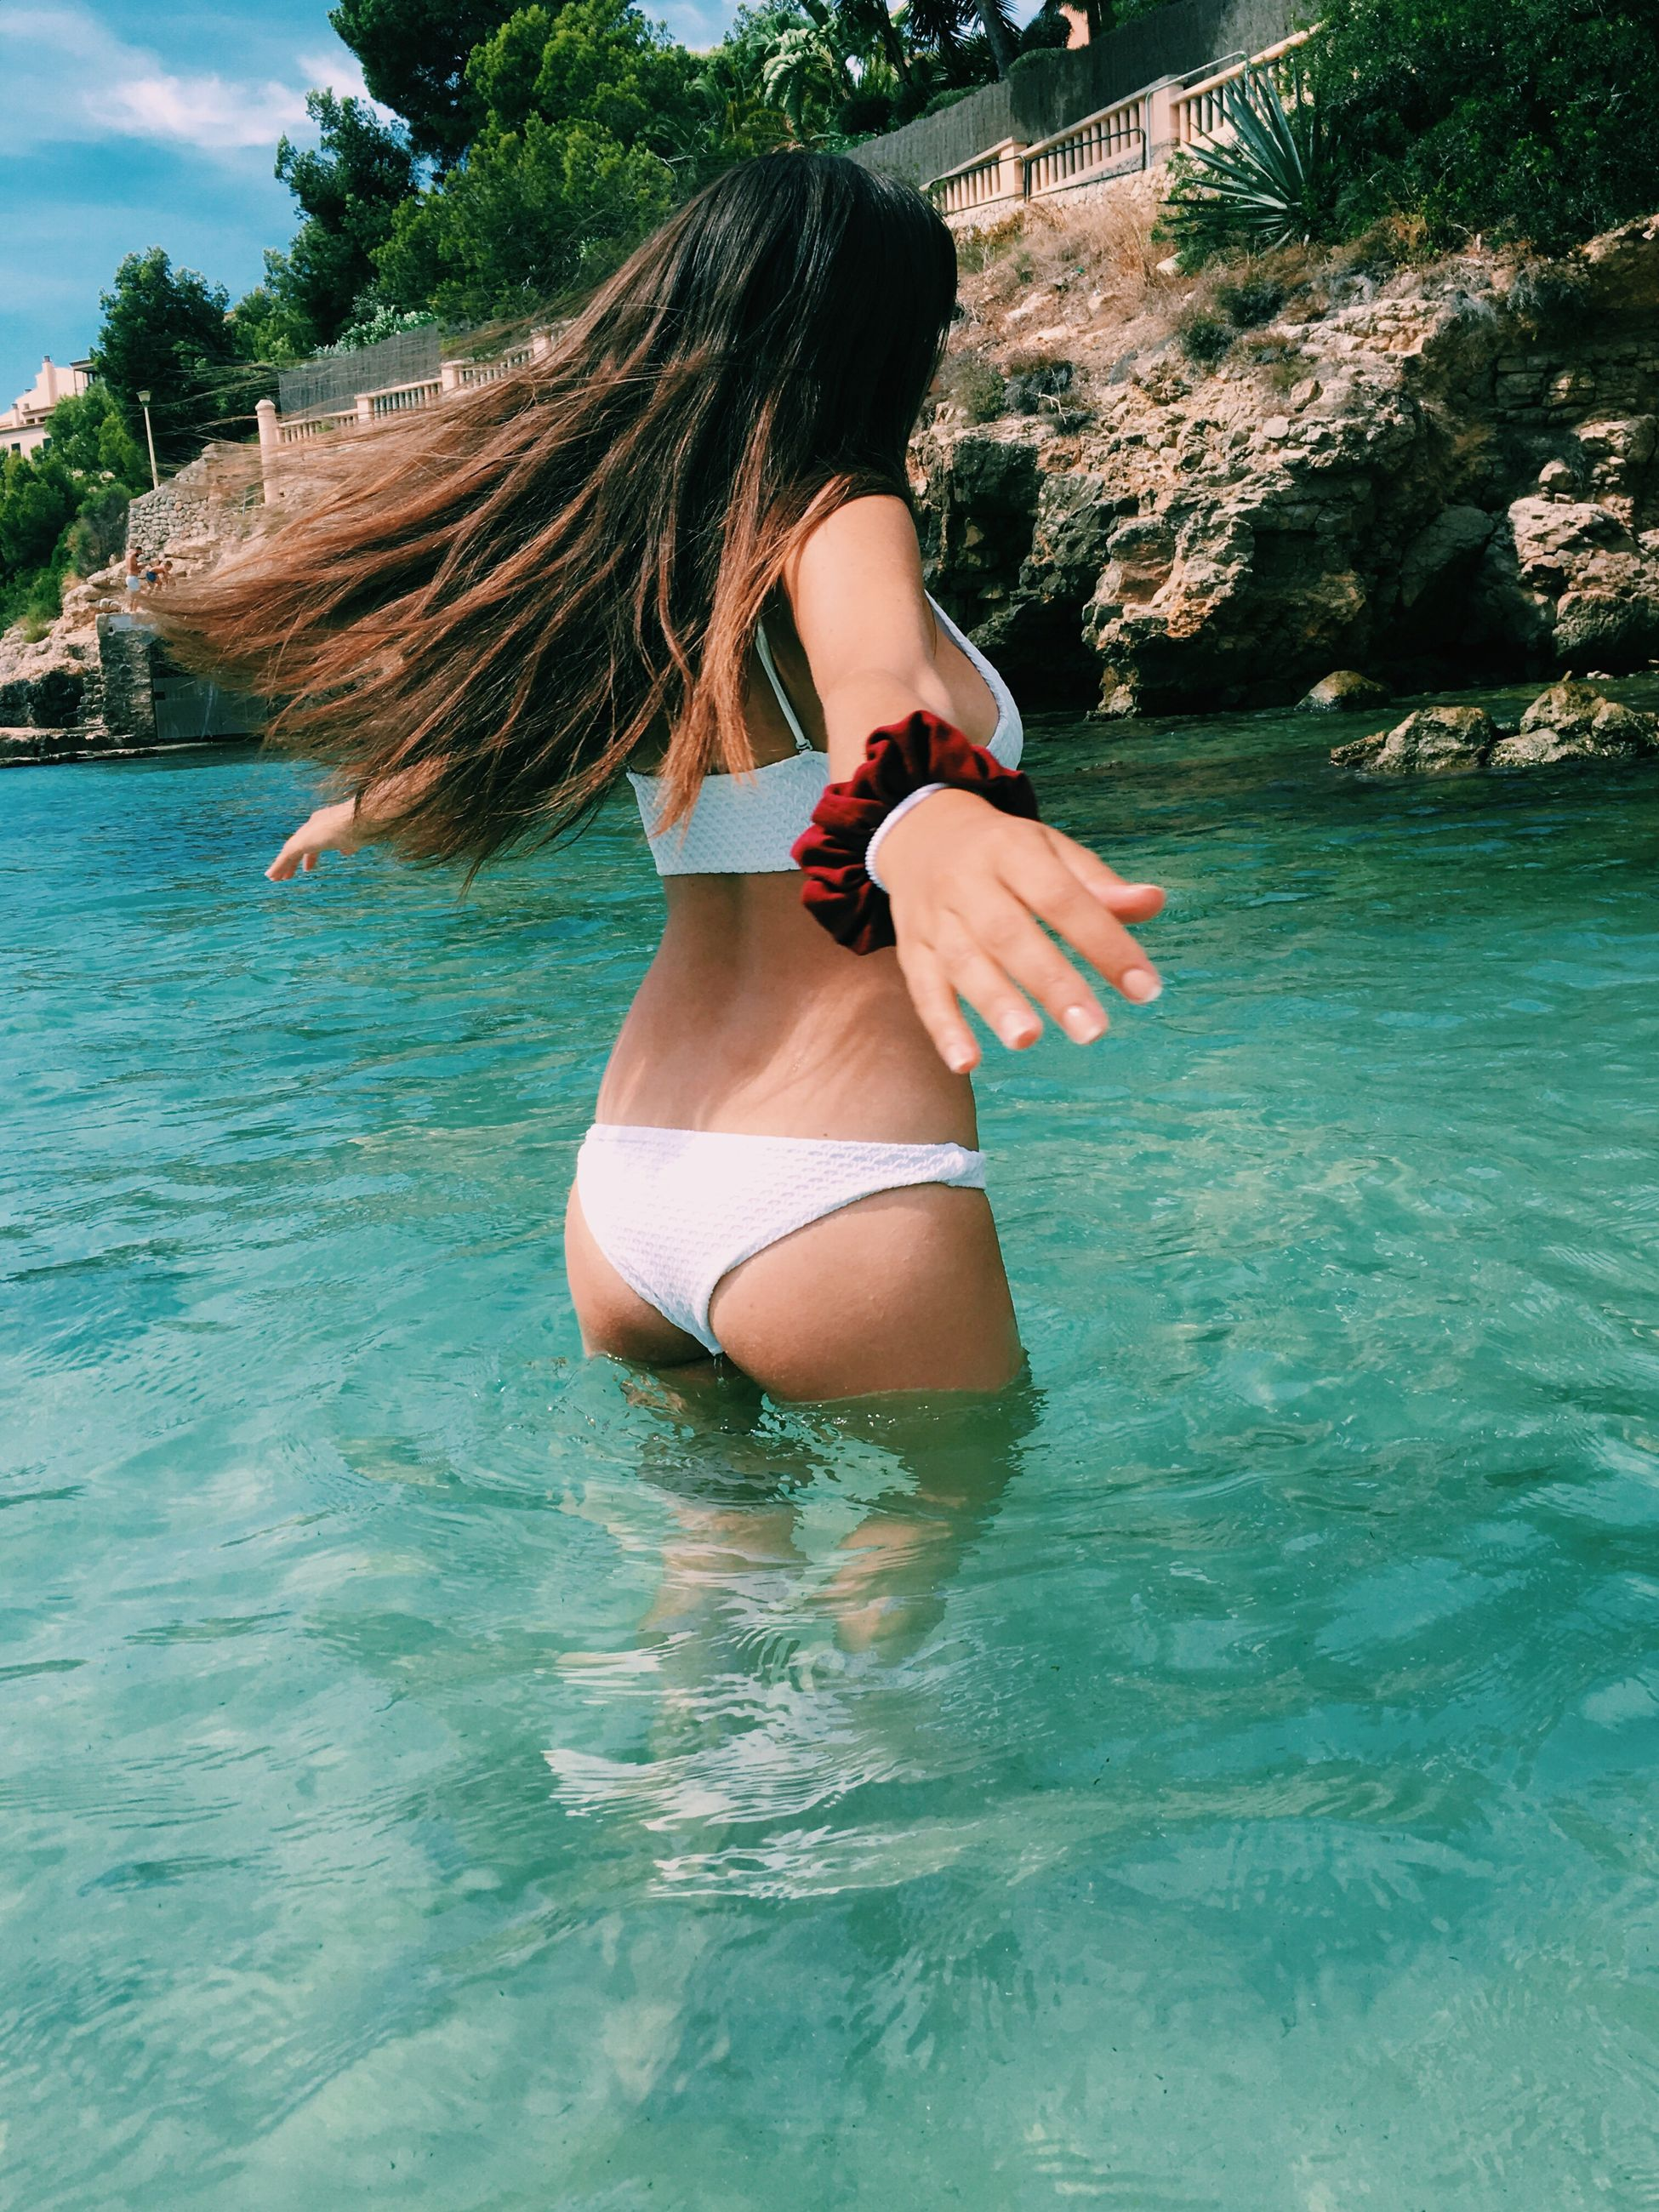 water, long hair, young adult, young women, waterfront, tranquil scene, beauty, sea, day, tranquility, scenics, outdoors, carefree, summer, person, vacations, nature, non-urban scene